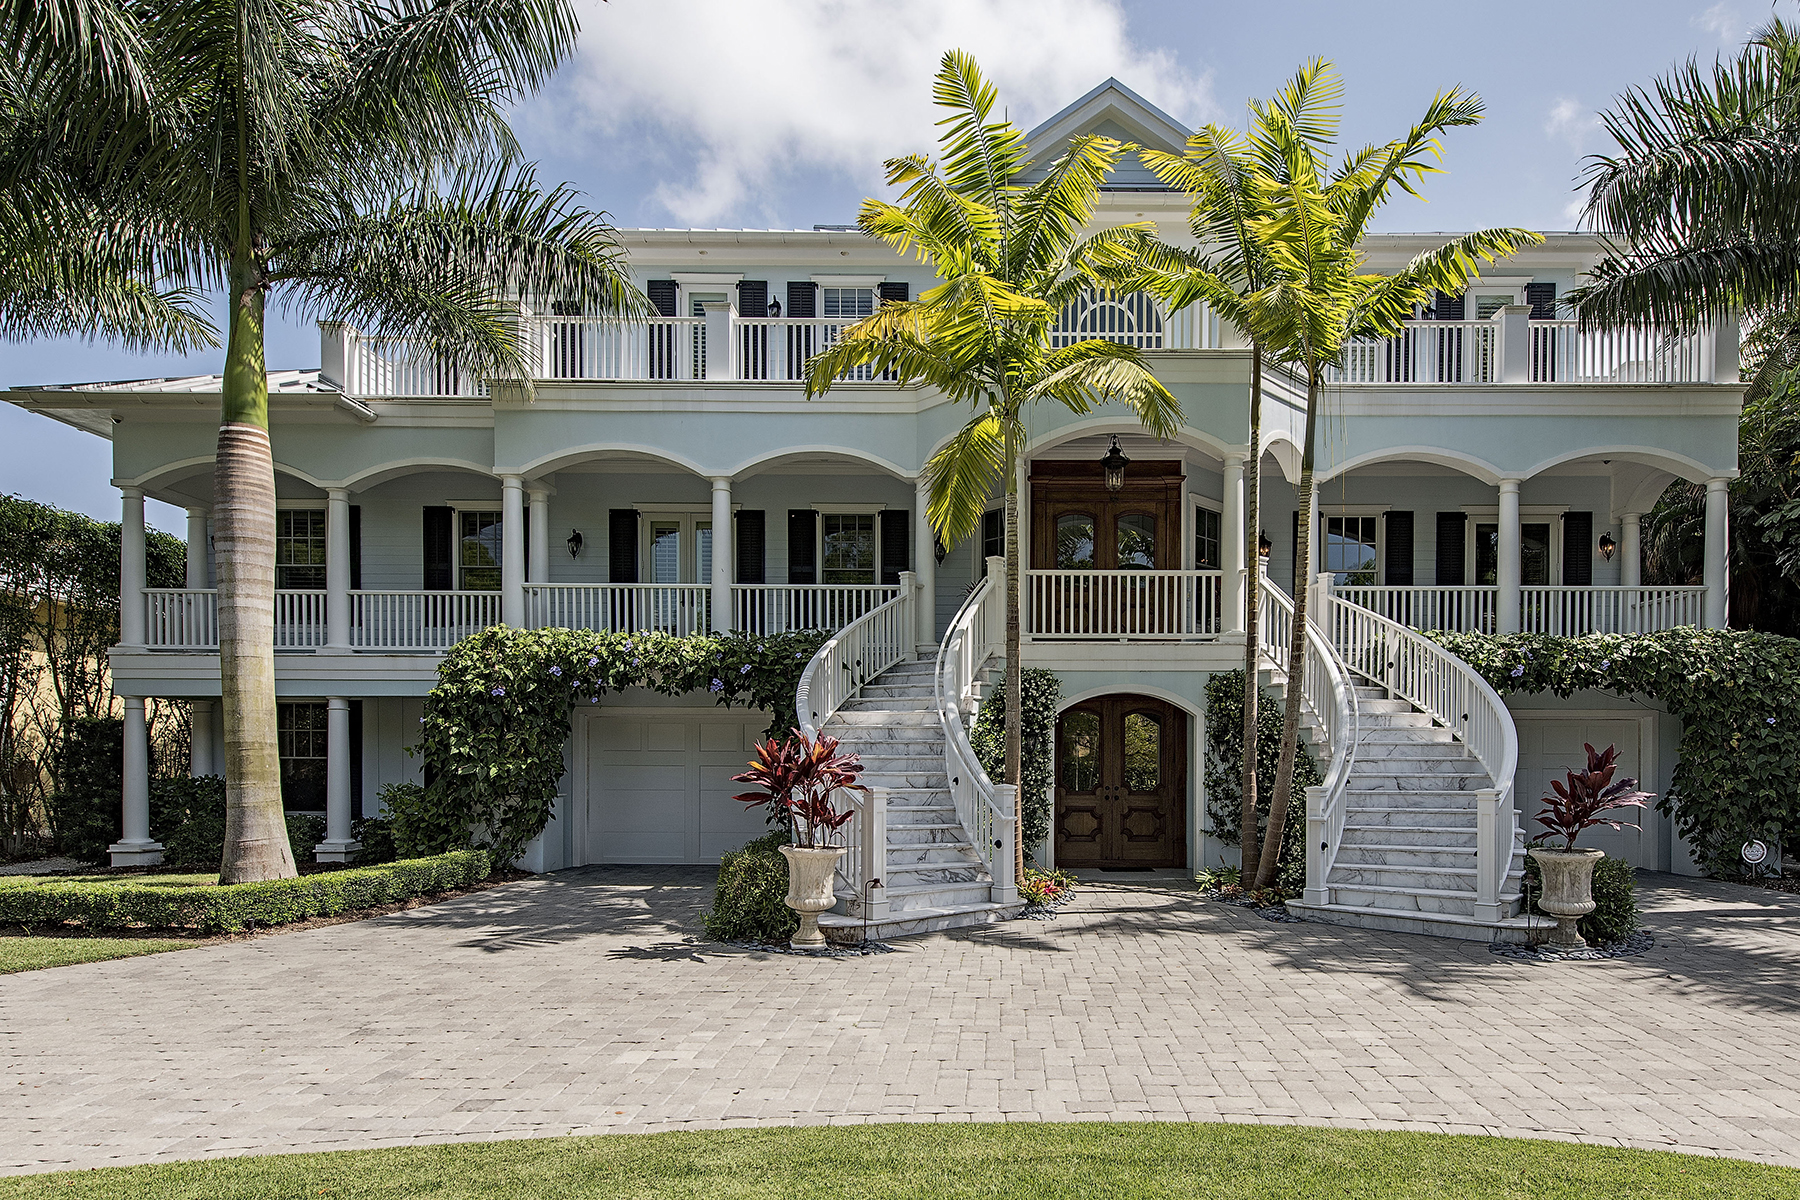 Single Family Home for Rent at OLD NAPLES 140 3rd Ave S Naples, Florida 34102 United States